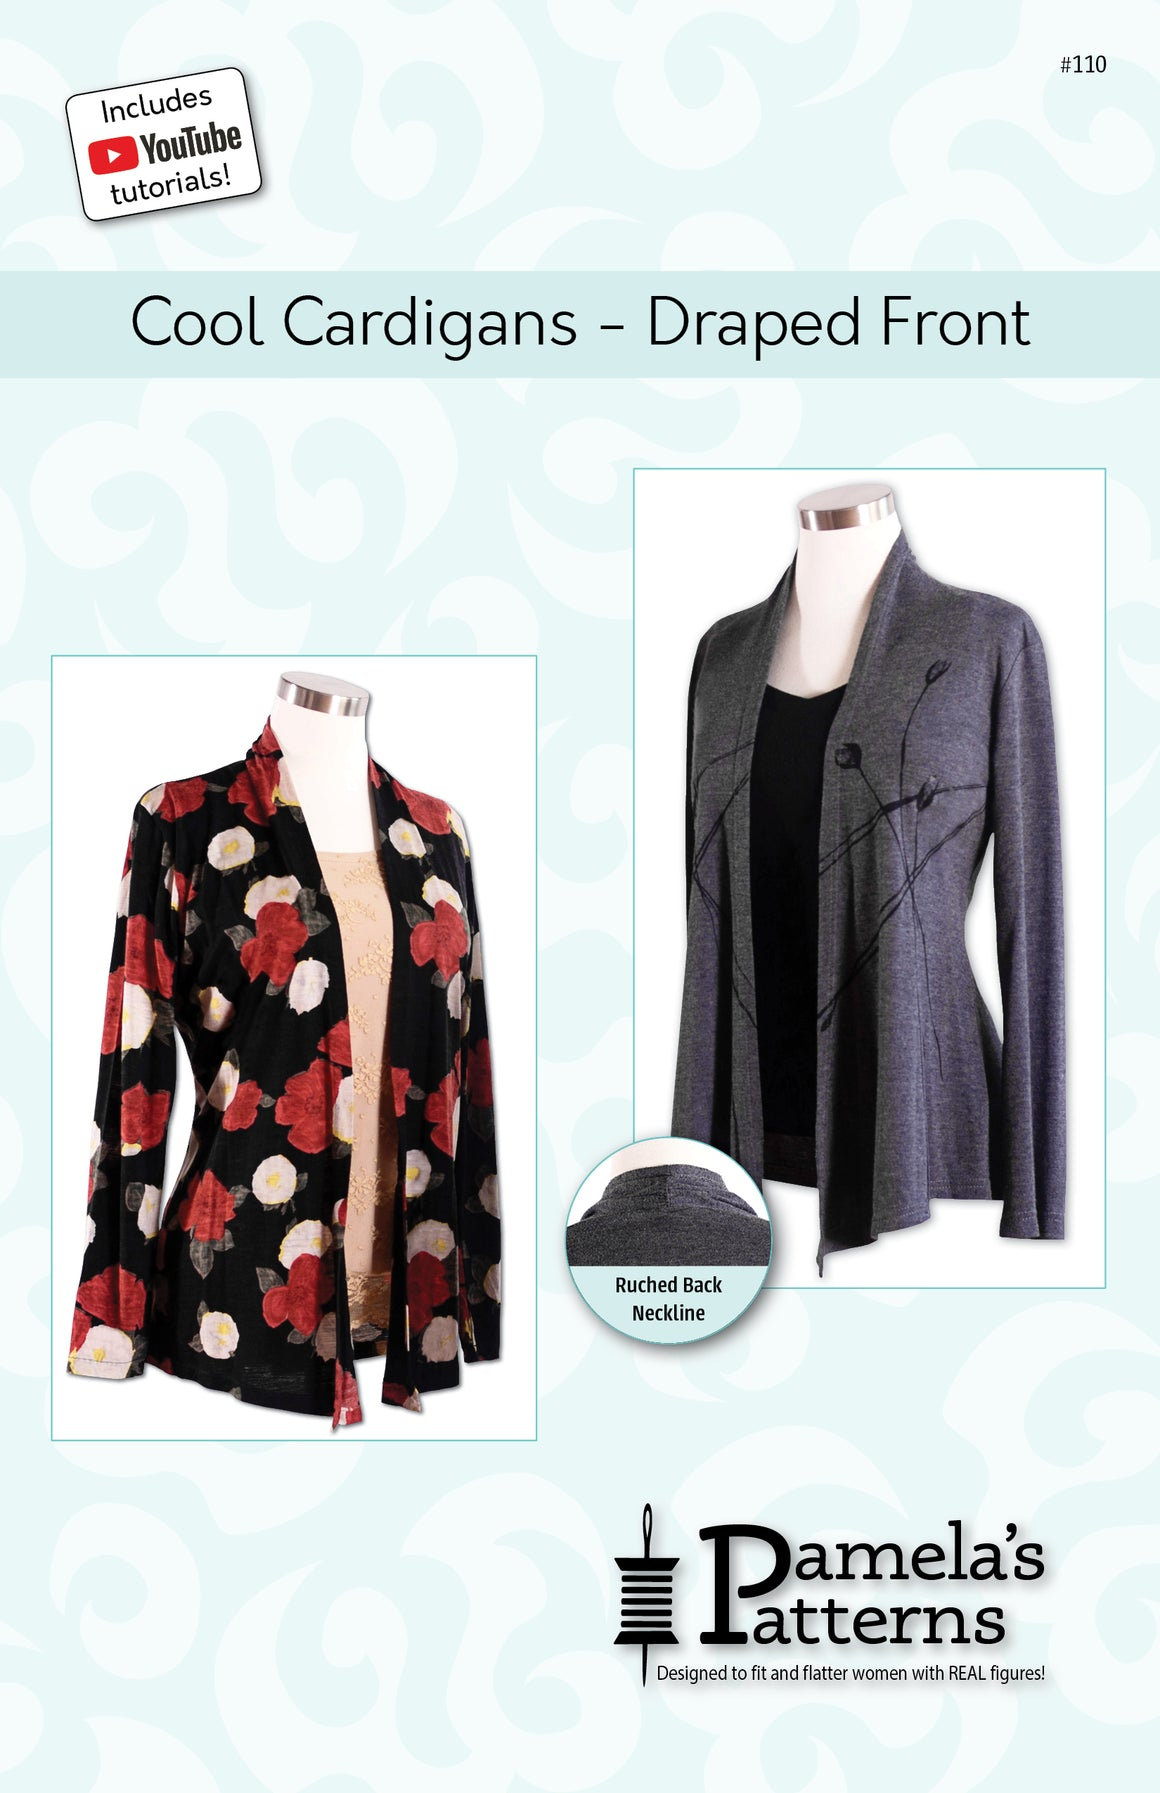 #110 - Cool Cardigan Draped Front